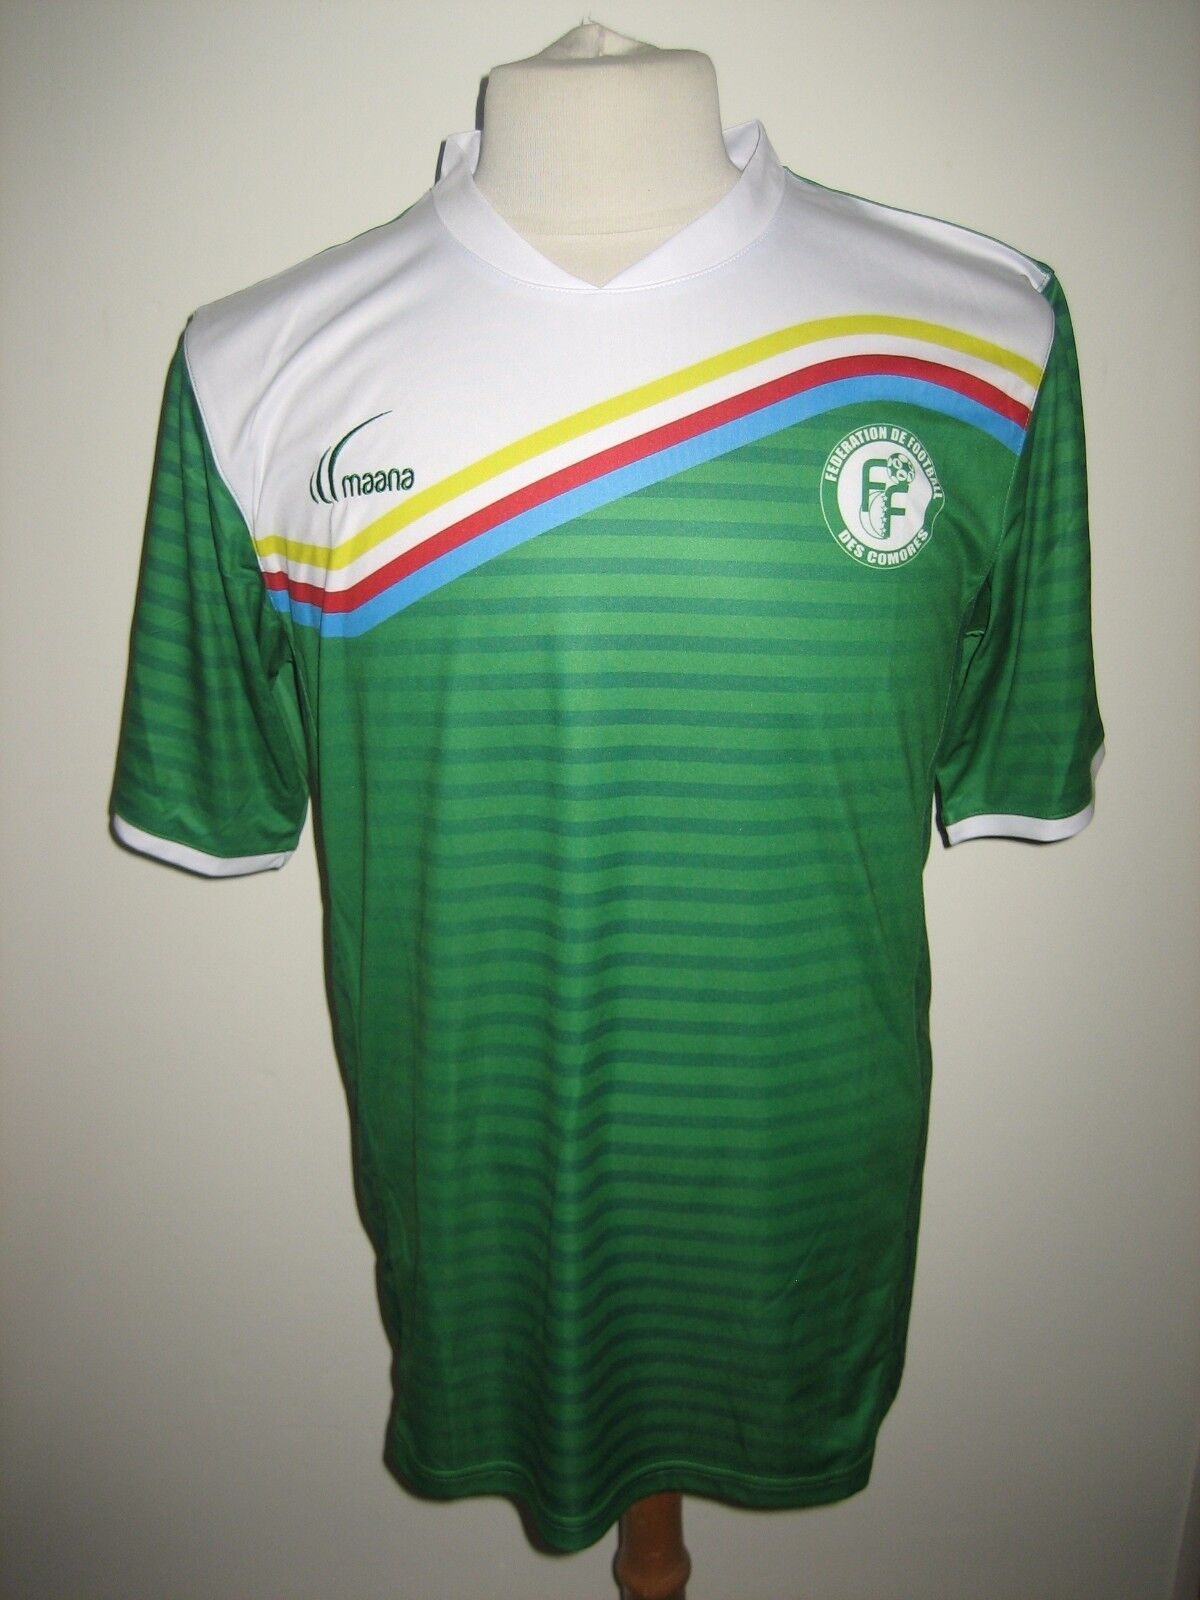 Comores home rare Africa CAF footbtutti shirt soccer jersey trikot maillot Diuominiione L